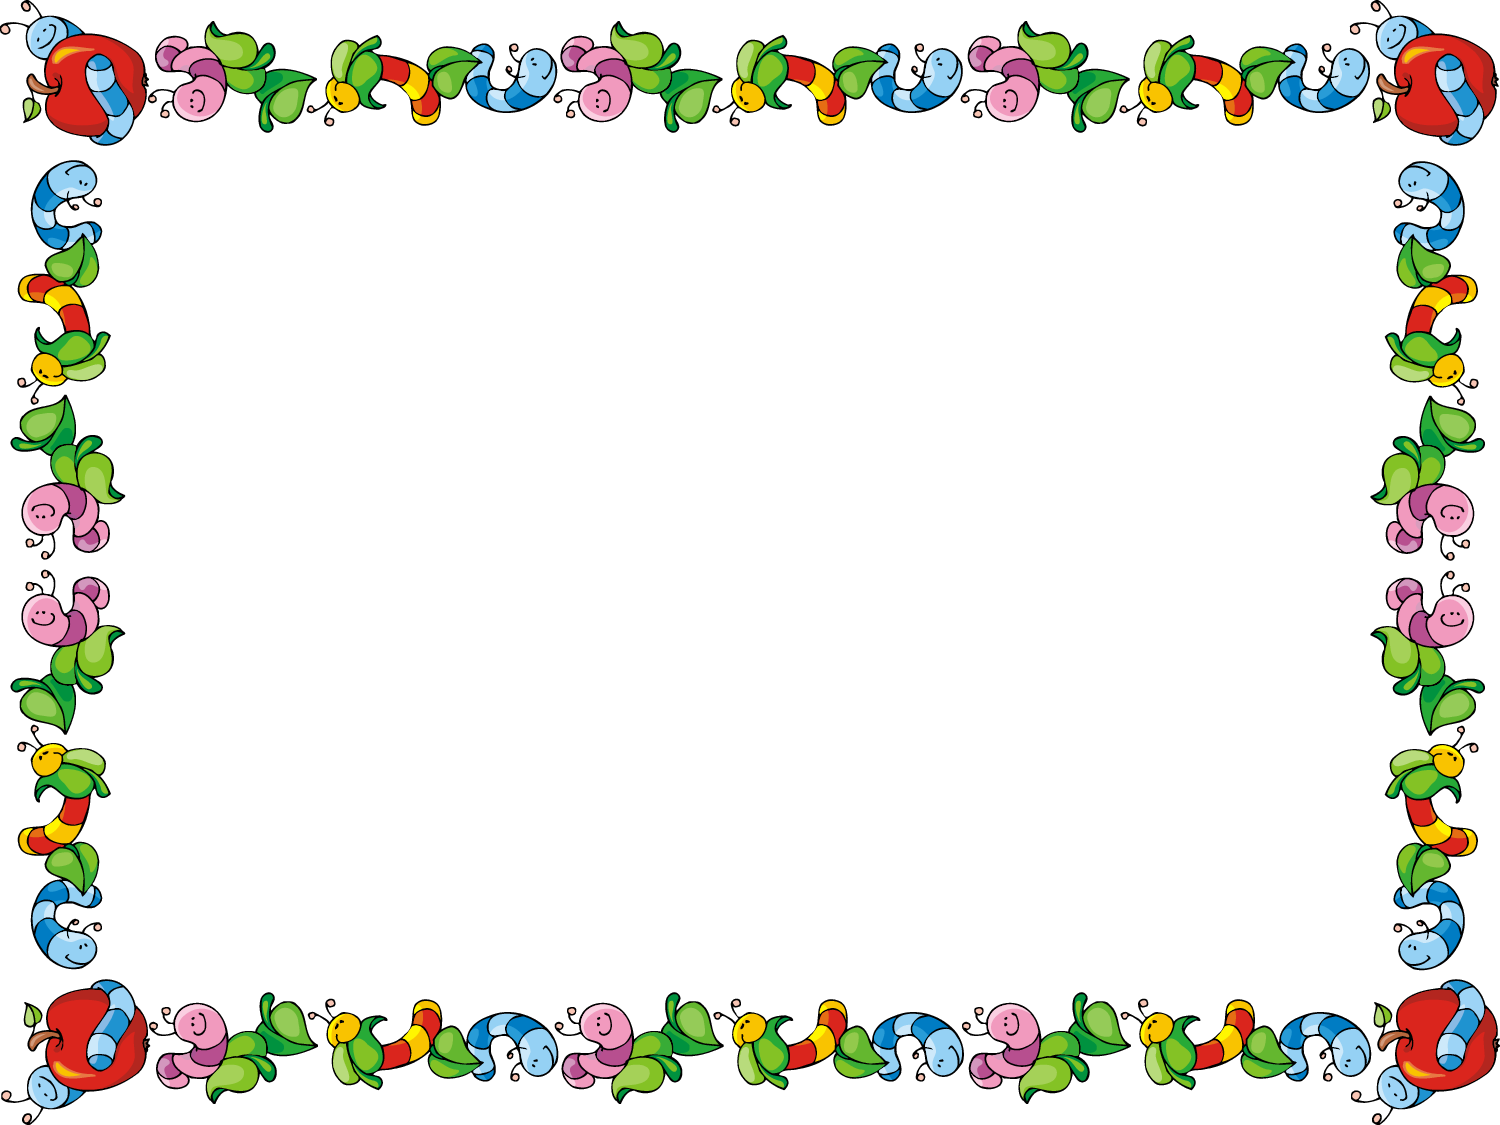 powerpoint border clipart clipart kid 11 frames and borders in ppt cliparts that you can to